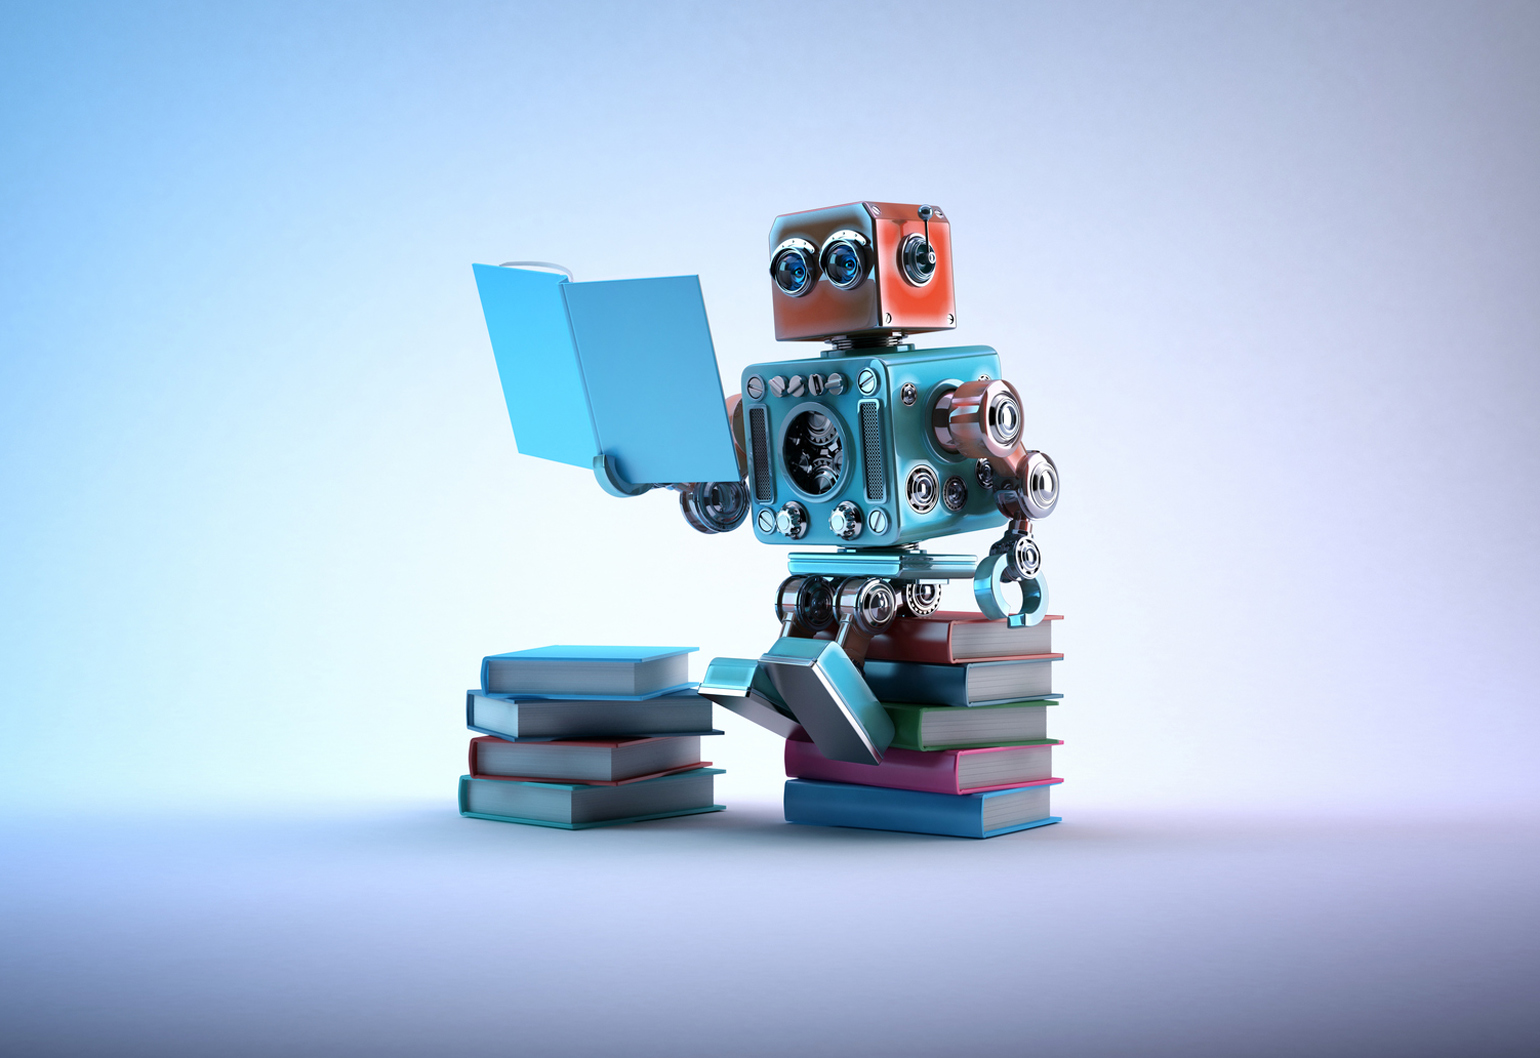 Brisbane Startup Aims To Change Out Of Date Robotics Education